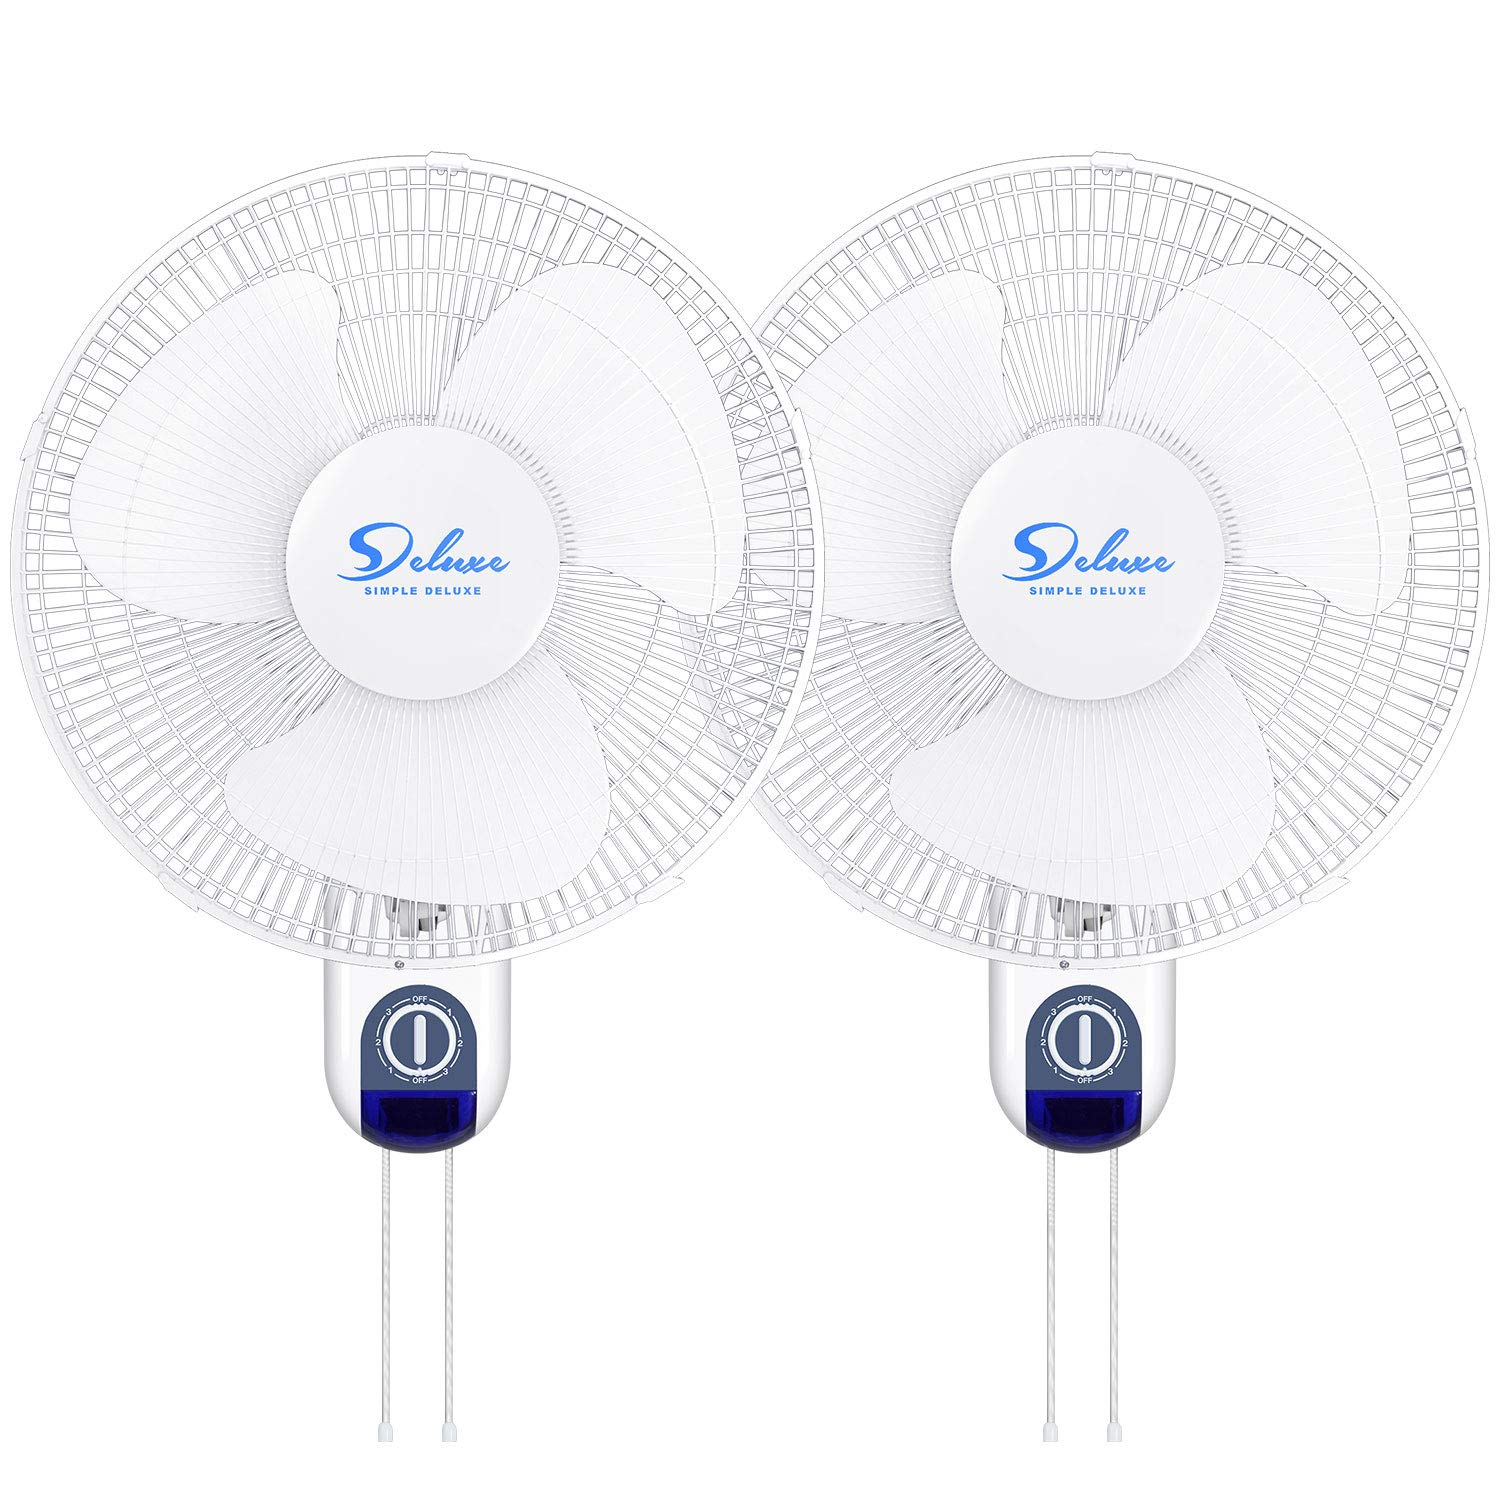 3 Speed Settings Simple Deluxe Operation 90 Degree ETL Certified 2Pack 16 Inch Adjustable Tilt Household Wall Mount Fans Oscillating with Remote Control Quiet for Home White Shop and Office